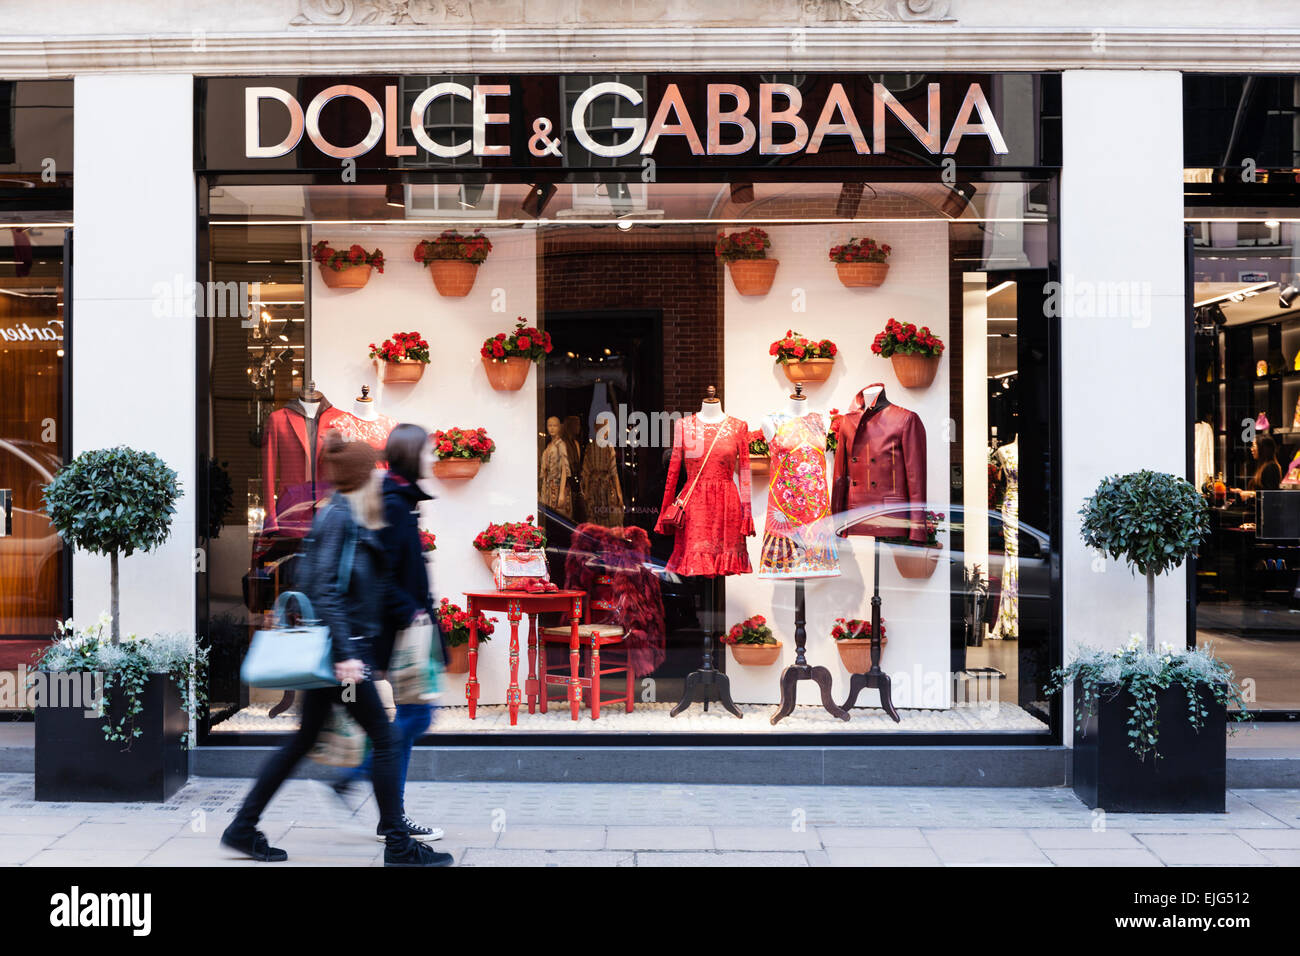 A couple of young women walk by the Dolce & Gabbana  fashion store on Old Bond Street, Mayfair, London, England. - Stock Image